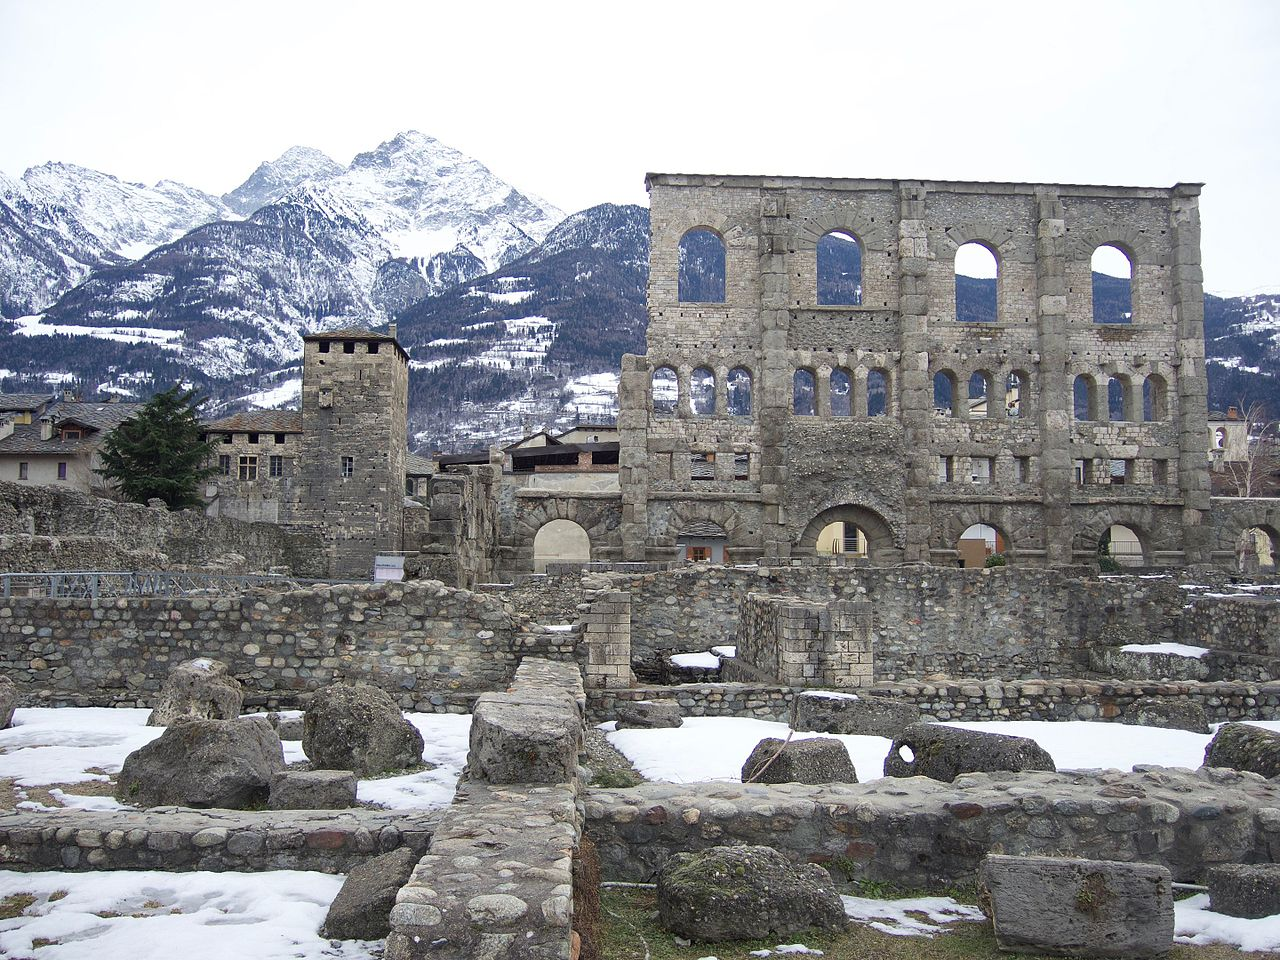 What to do in Valle d'Aosta if you're not into hiking?